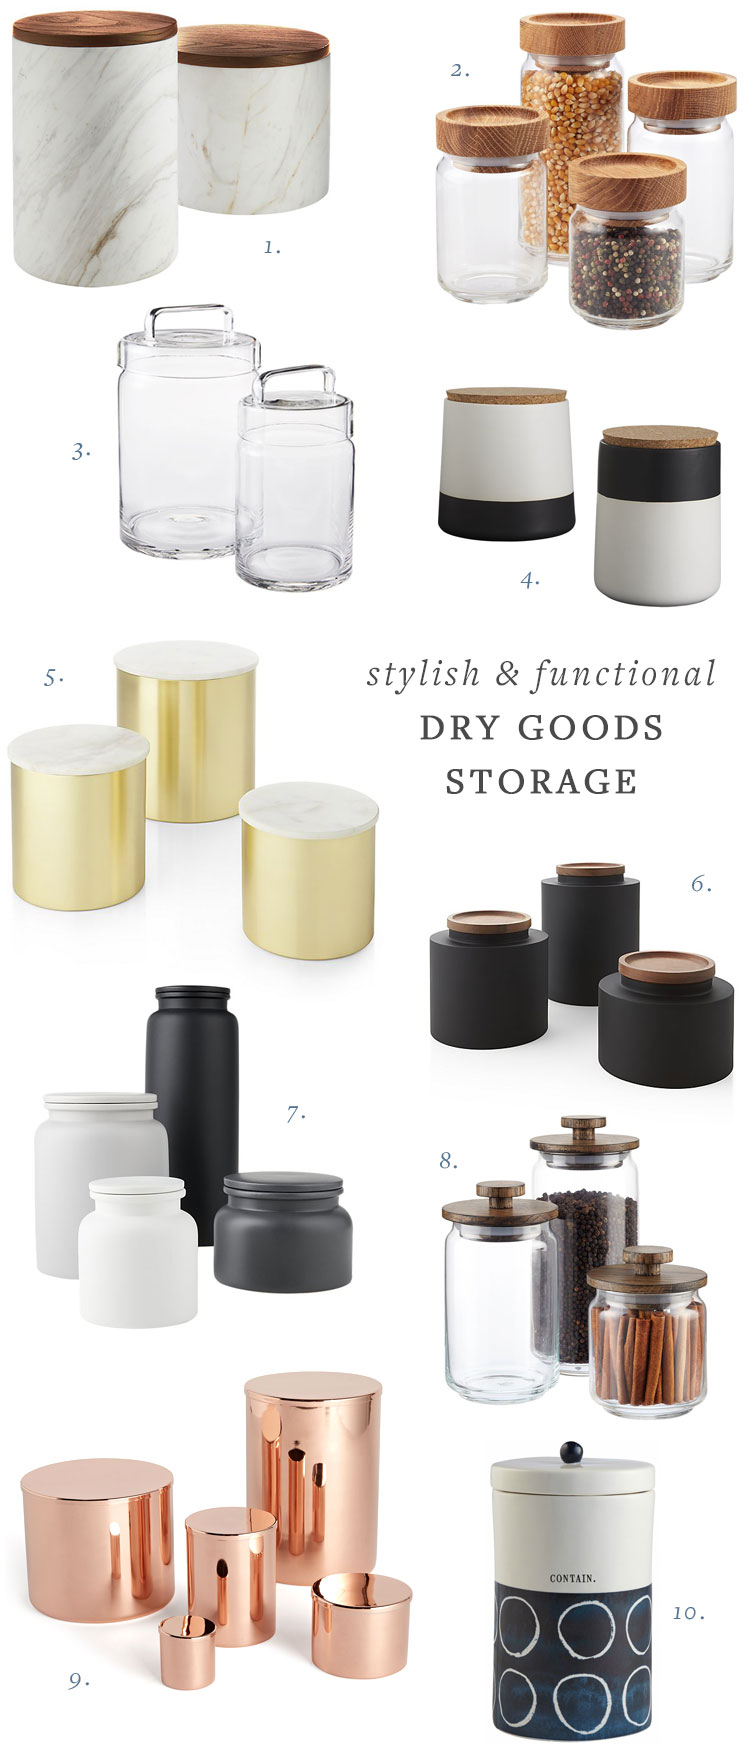 My Search For Stylish (and Functional) Dry Goods Storage Containers. Full  Source List